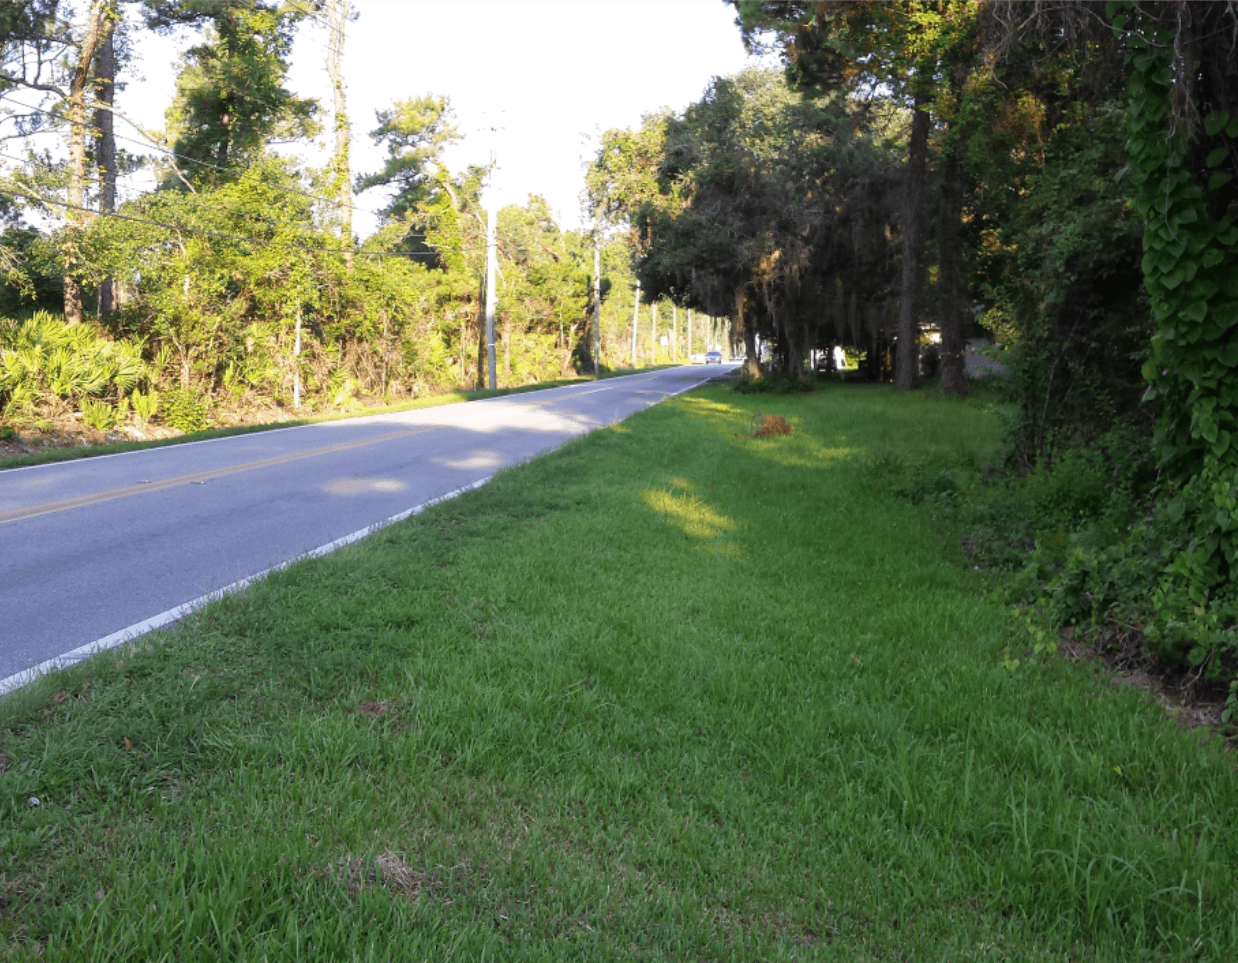 A stretch of road on Woodlawn Road